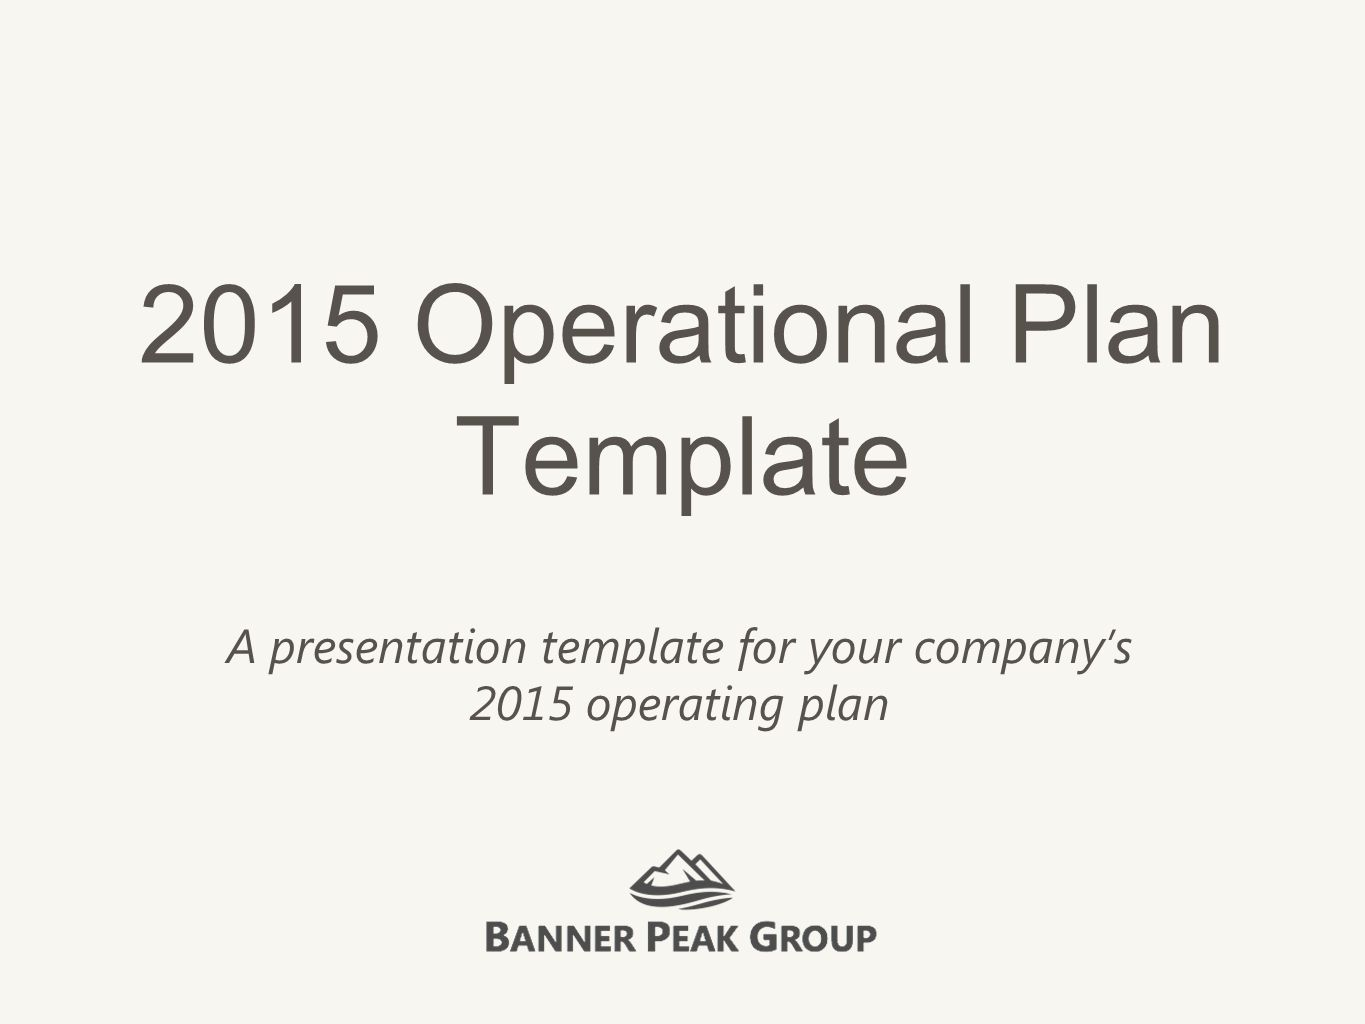 how to describe an operational plan